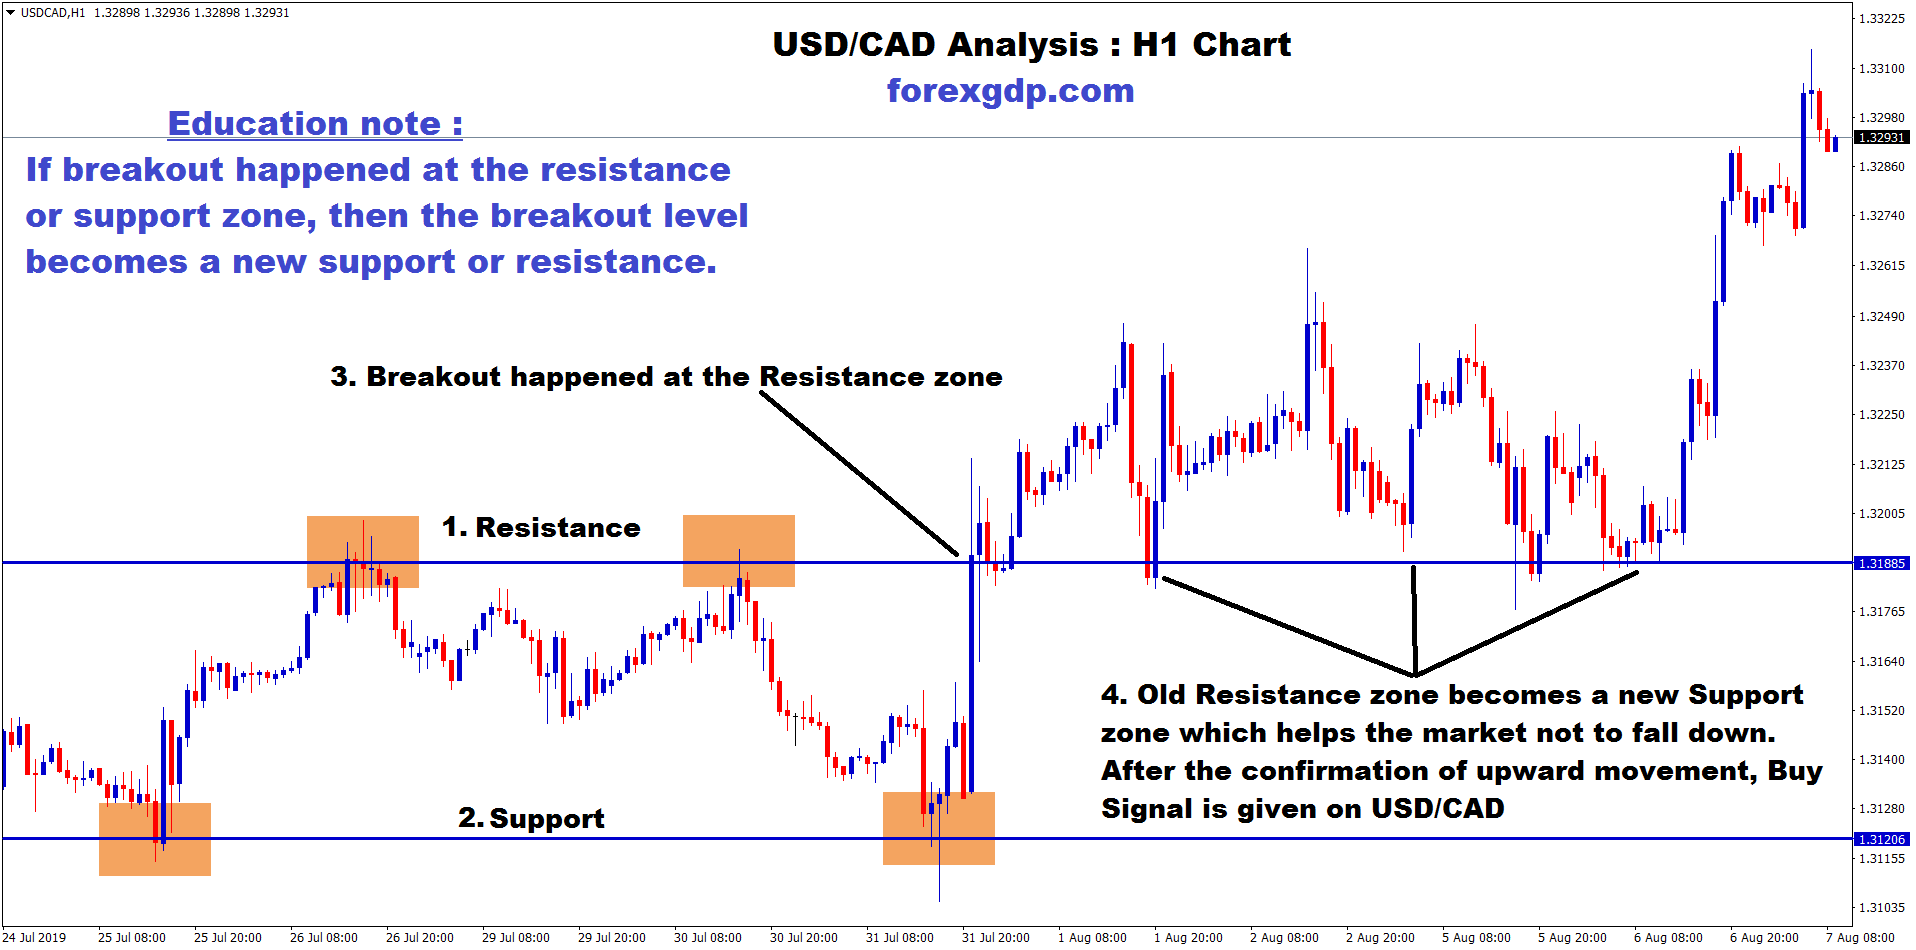 usd/cad old resistance has changed as new support zone